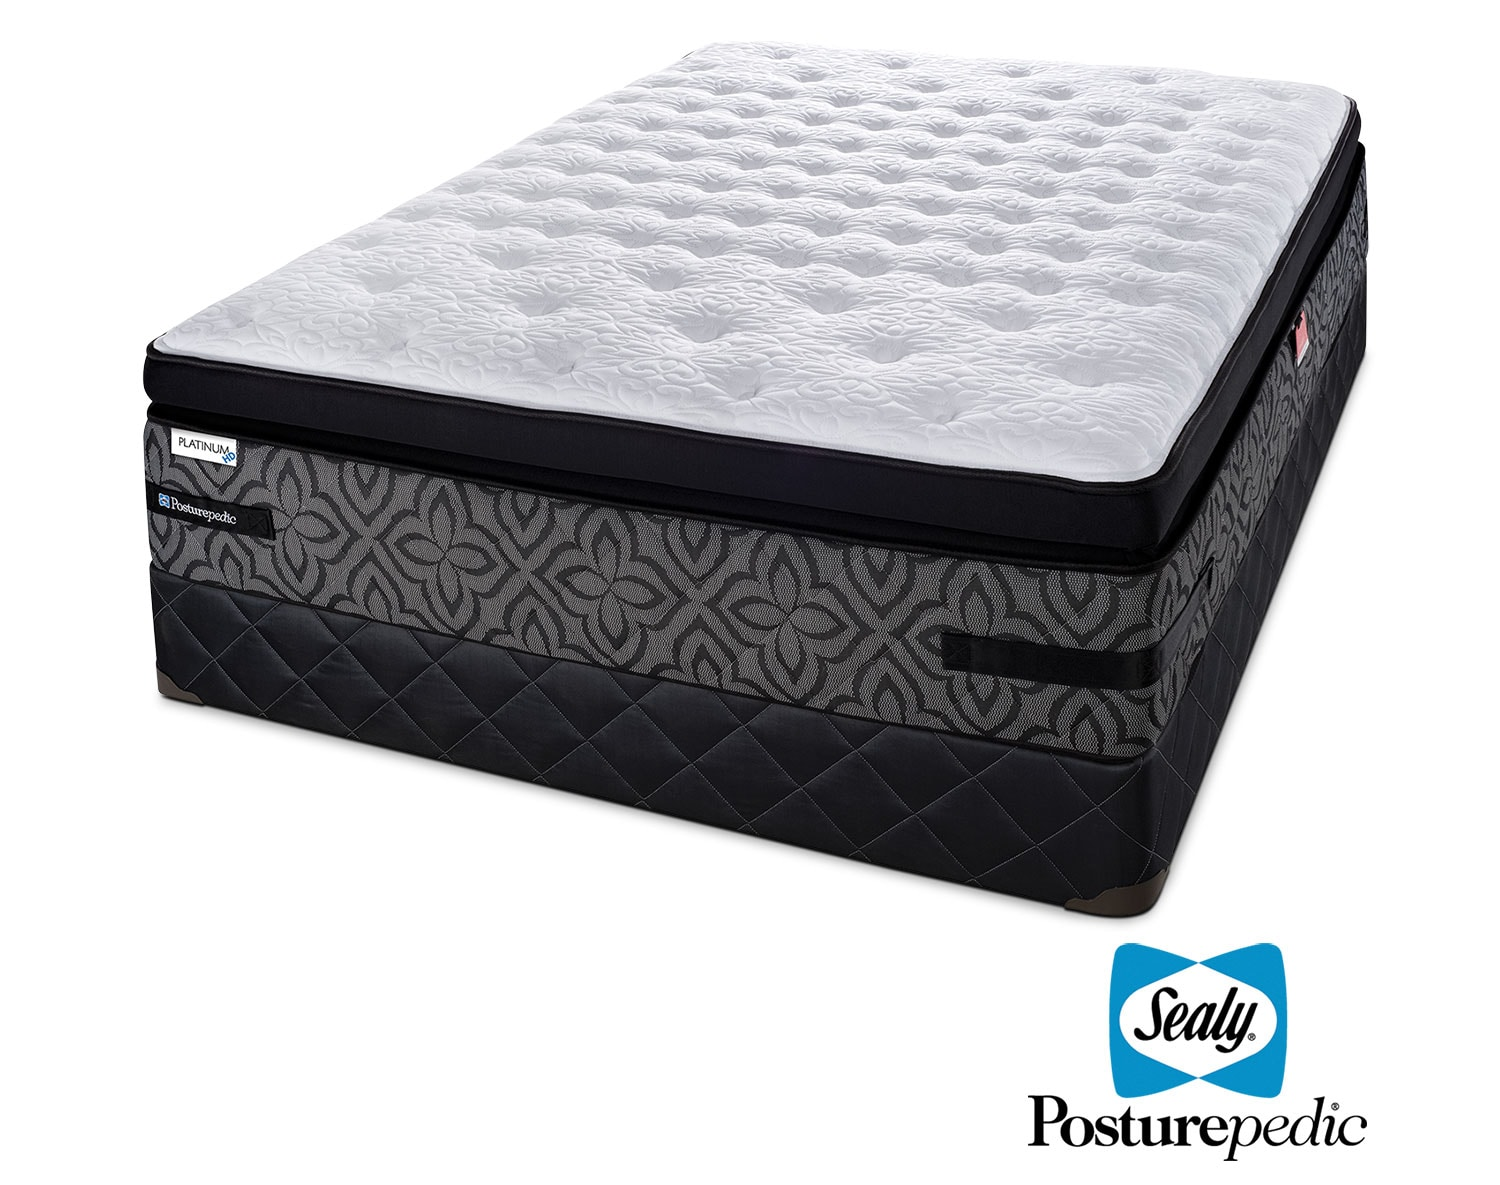 The Sealy Posturepedic 3 K Cushion Firm Collection